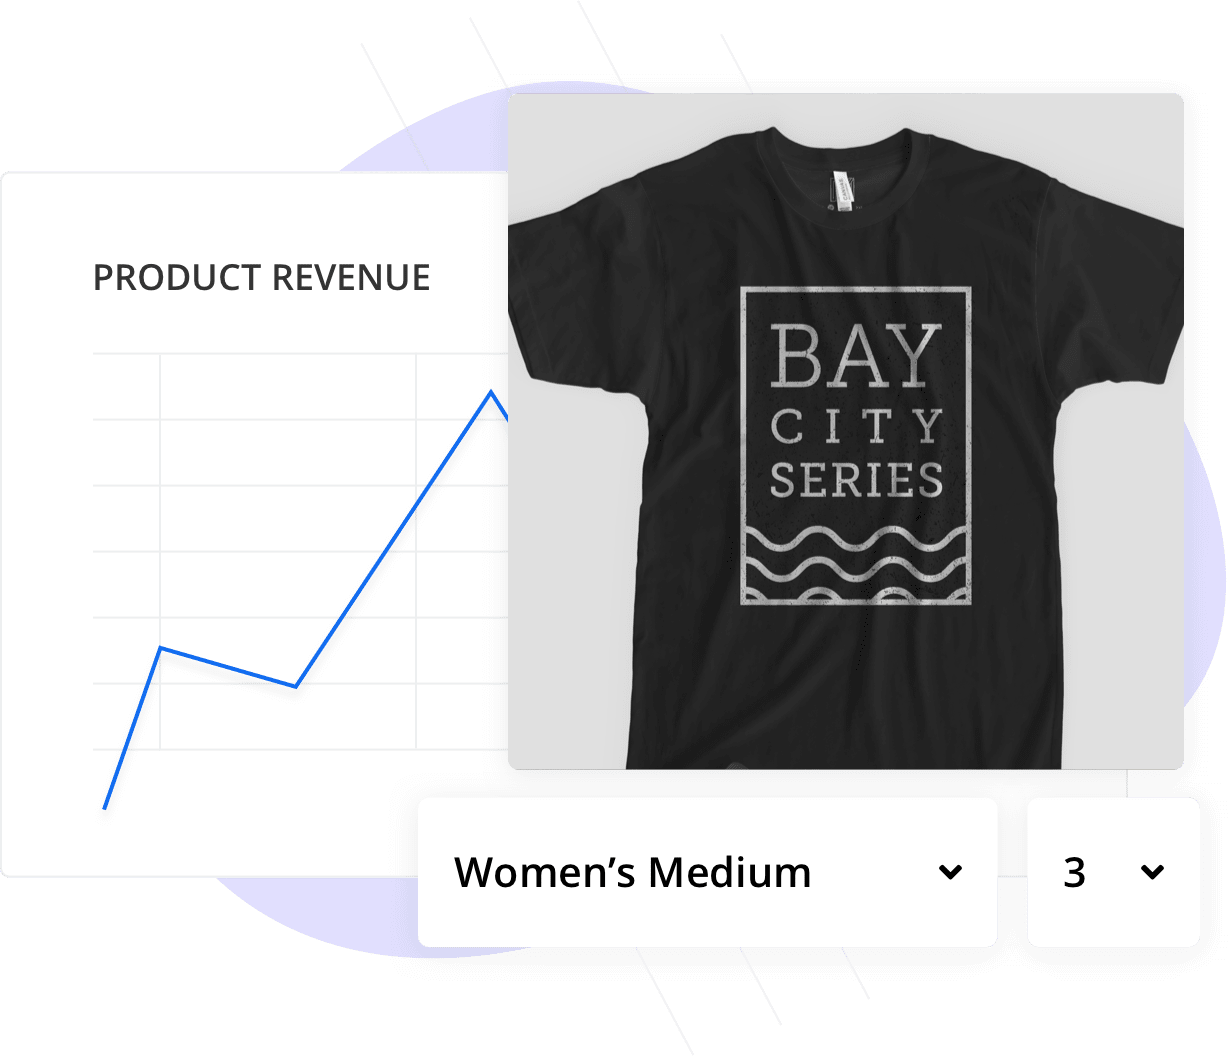 Product revenue chart and image of branded t-shirt